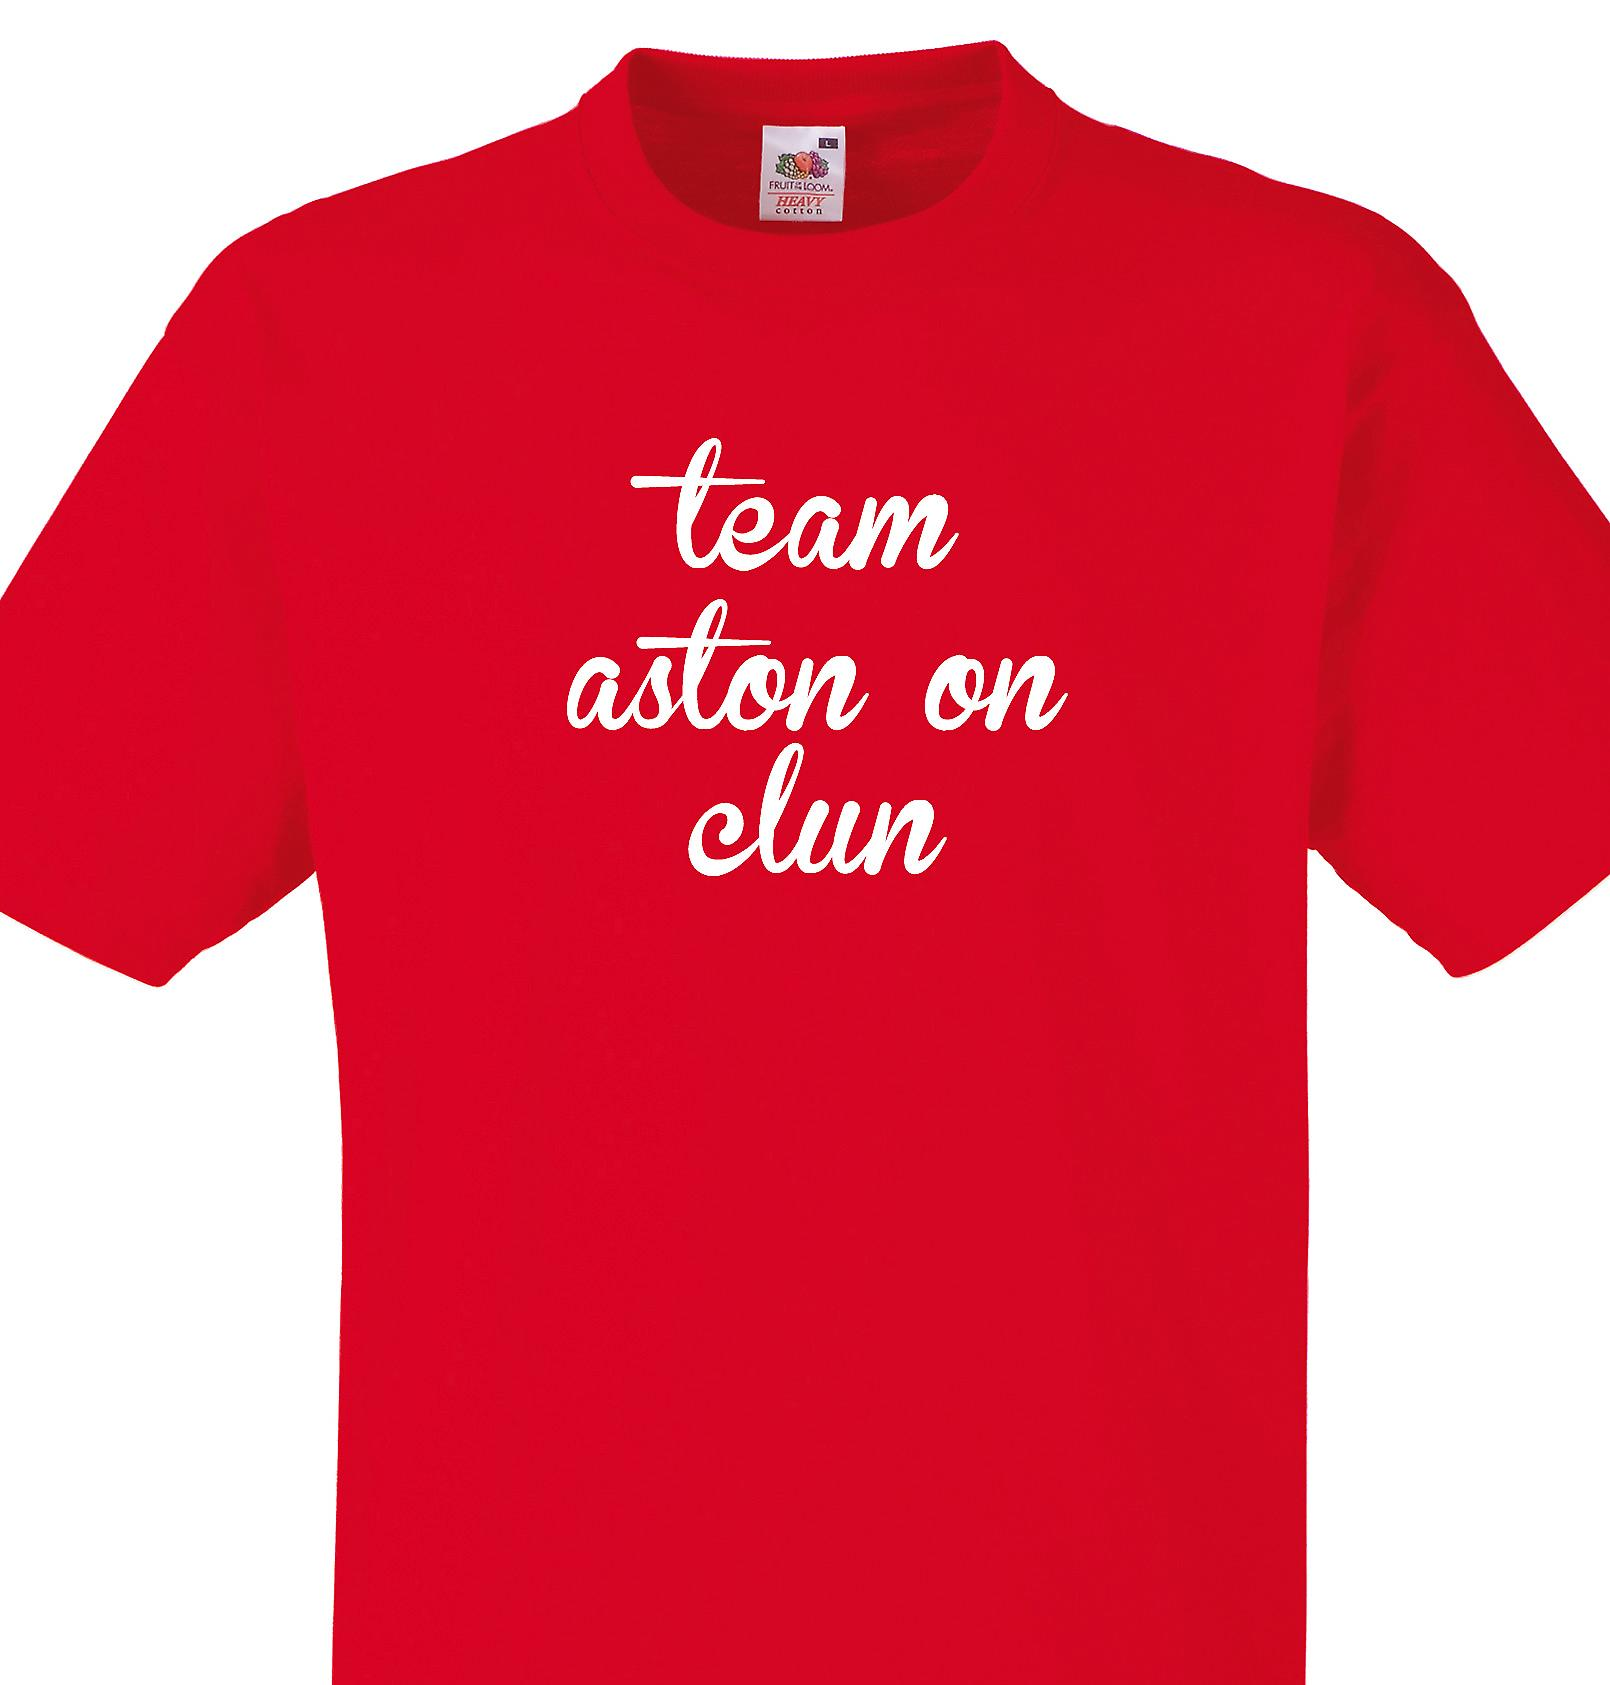 Team Aston on clun Red T shirt